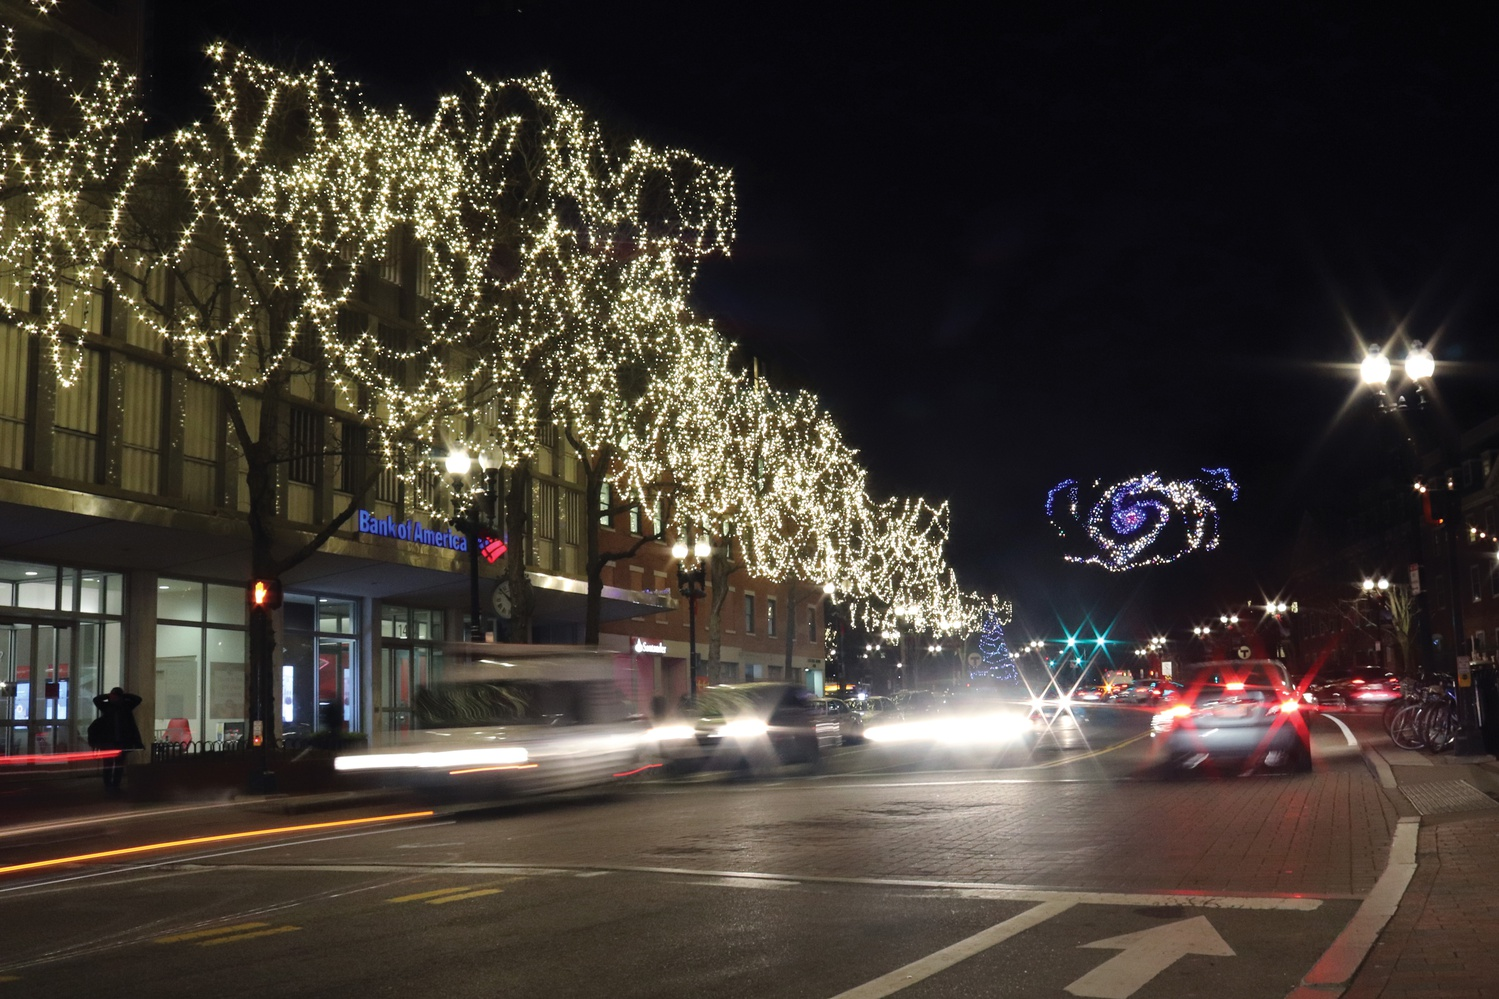 The holiday lights shine brightly in Harvard Square as snow gently falls in the afternoon darkness.